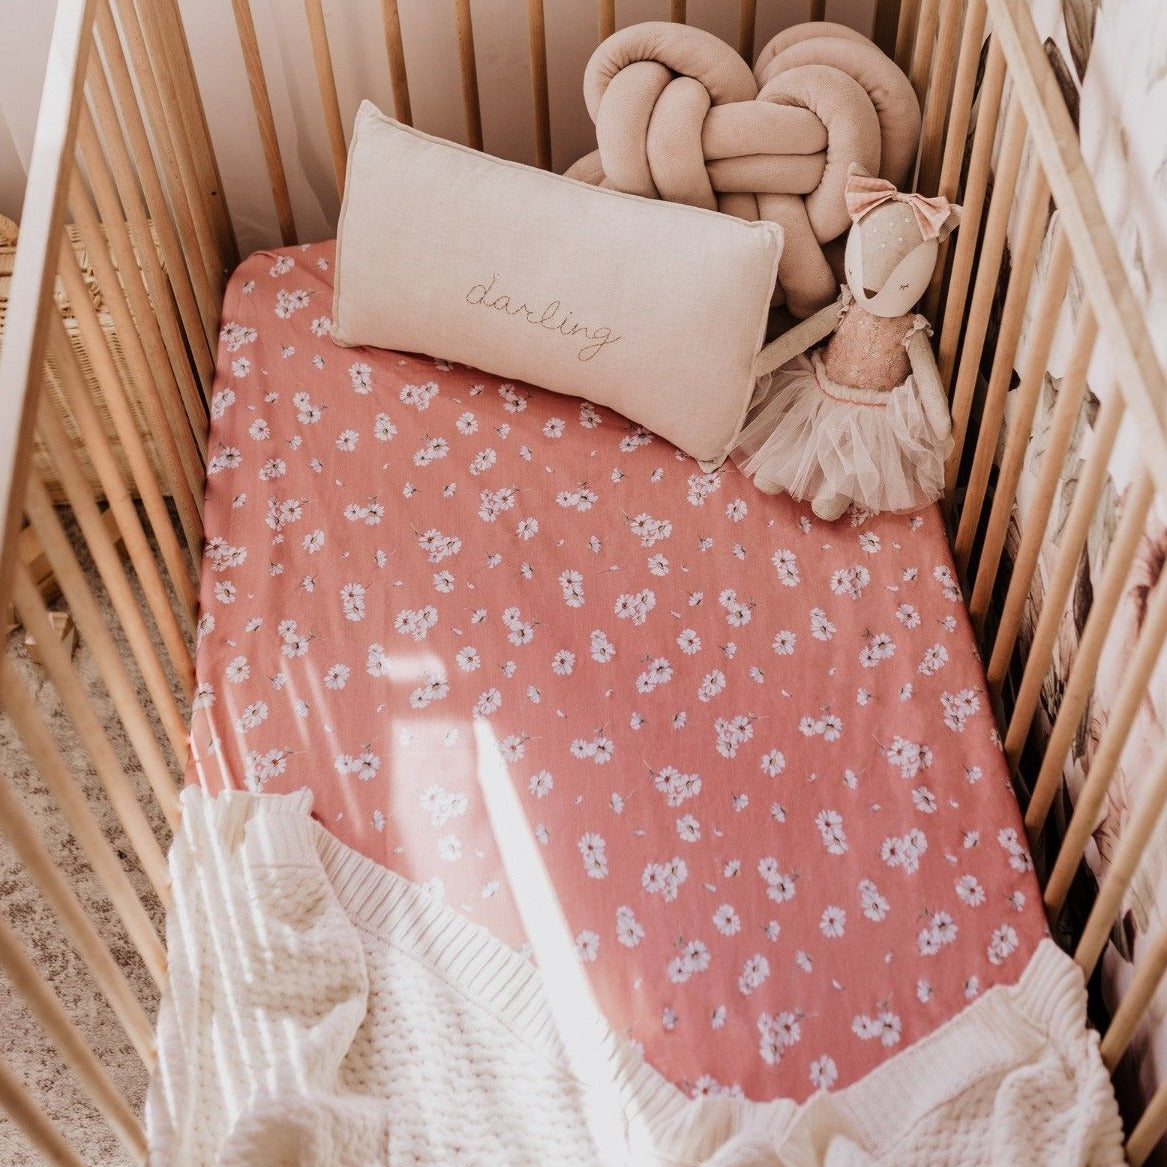 US stockist of Snuggle Hunny Kid's Daisy stretch cotton jersey crib sheet. Dusky pink color with white daisy print.